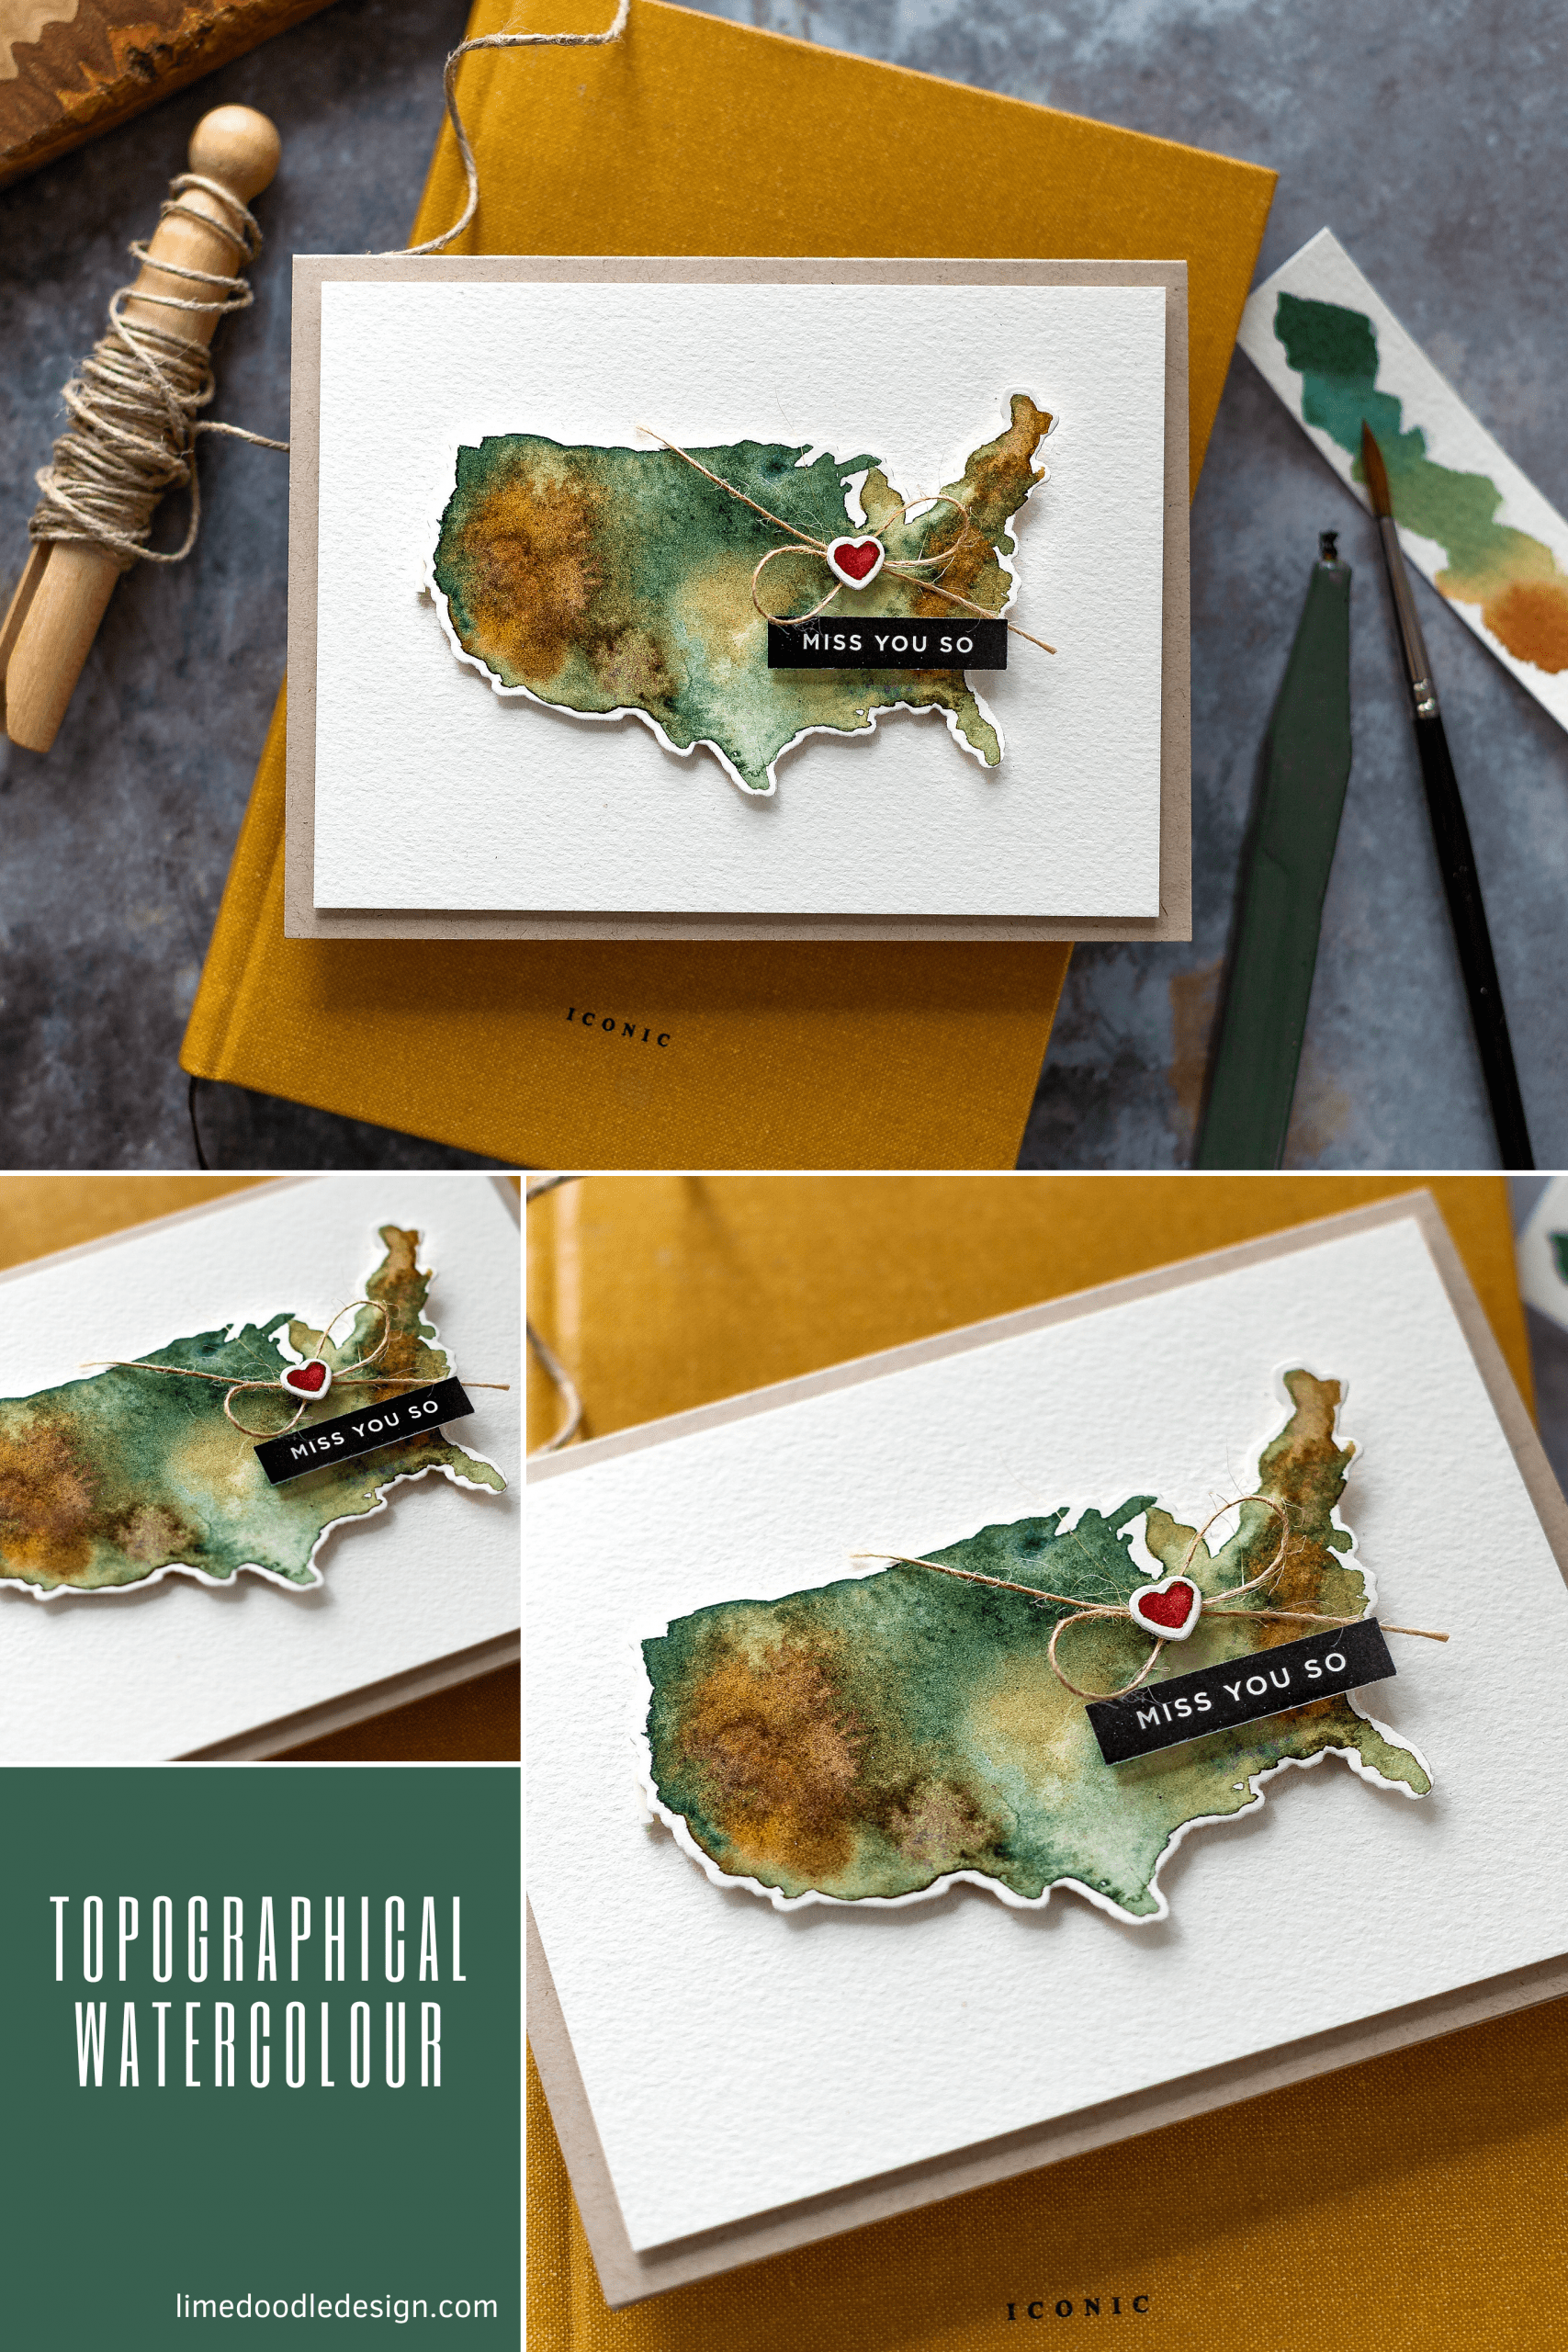 Watercoloured topographical map miss you handmade card by Debby Hughes using supplies from Simon Says Stamp #handmade #homemade #tutorial #watercolor #handmadecard